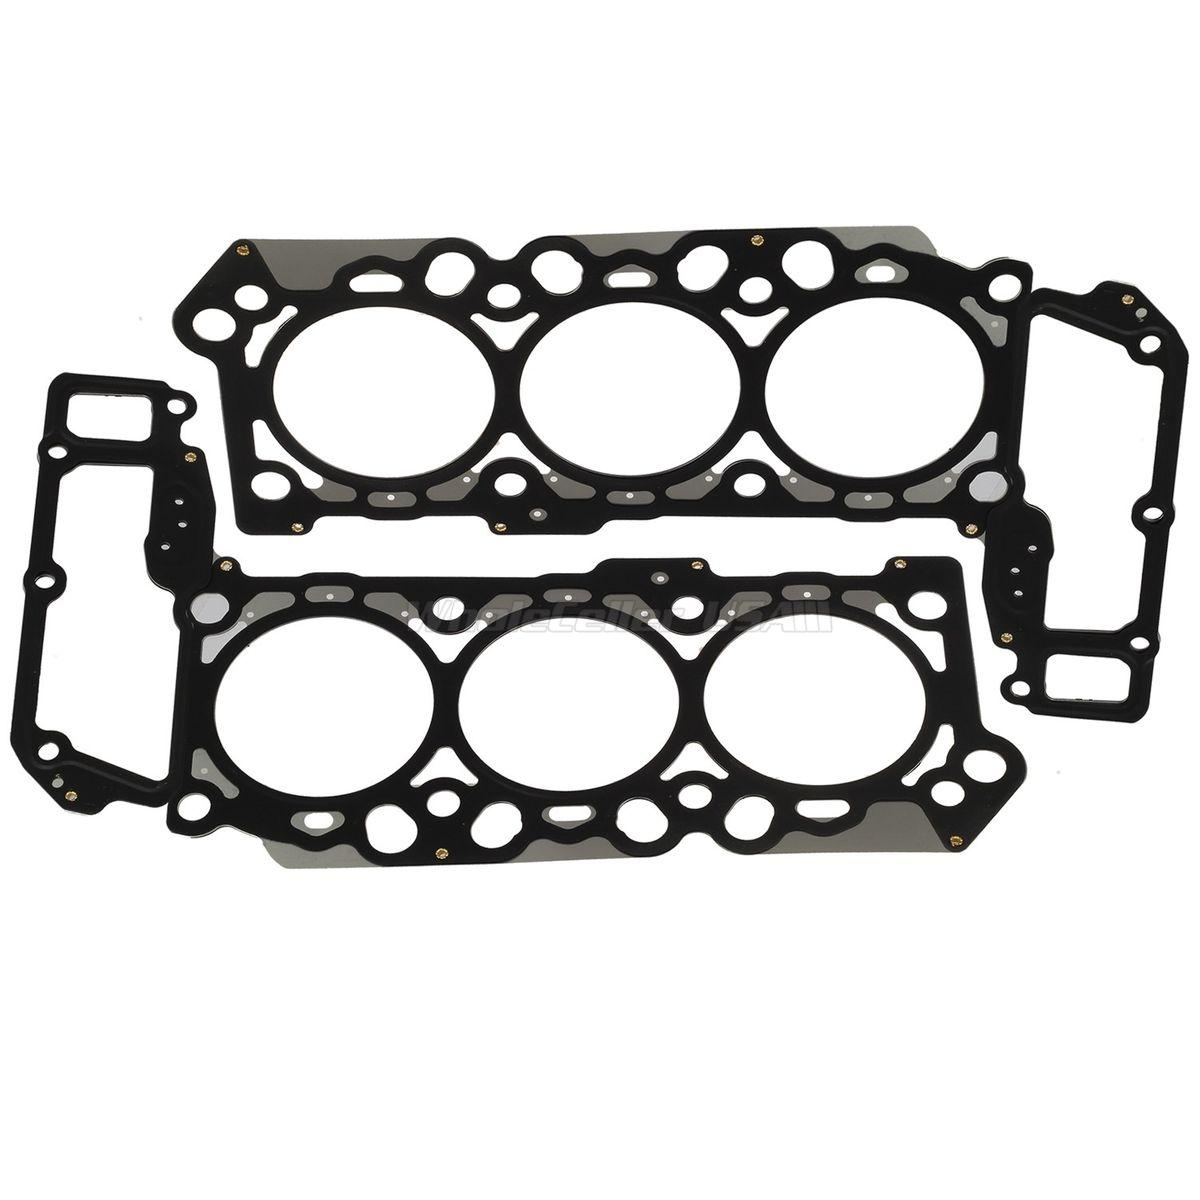 Head Gasket Set Fits Dodge Dakota Durango For Jeep Liberty